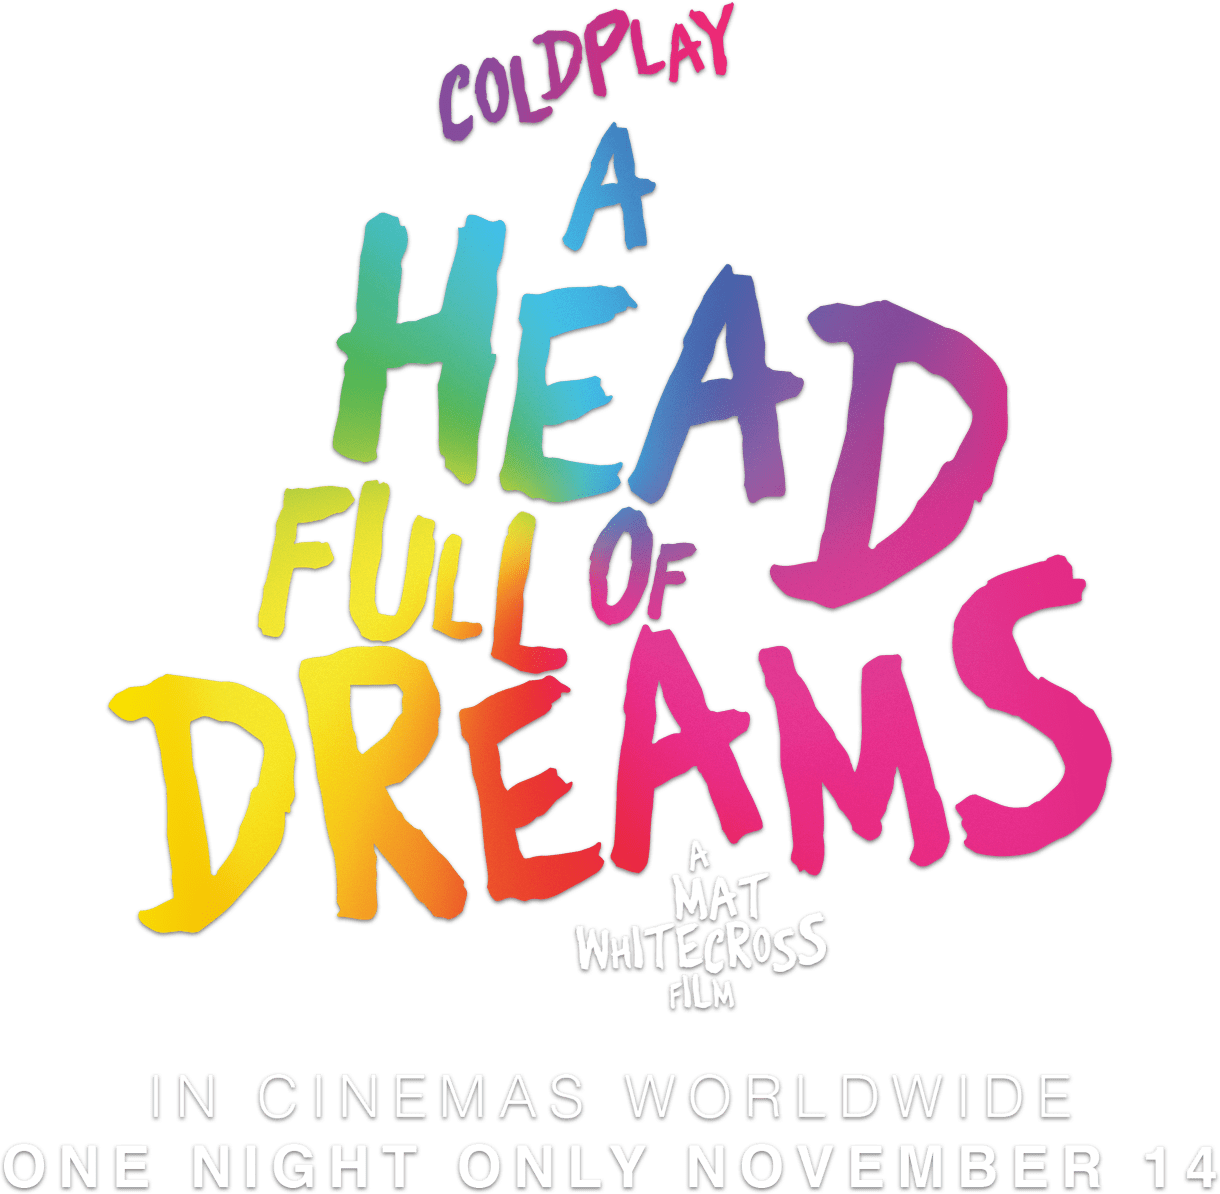 Coldplay: A Head Full of Dreams: Synopsis | Trafalgar Releasing